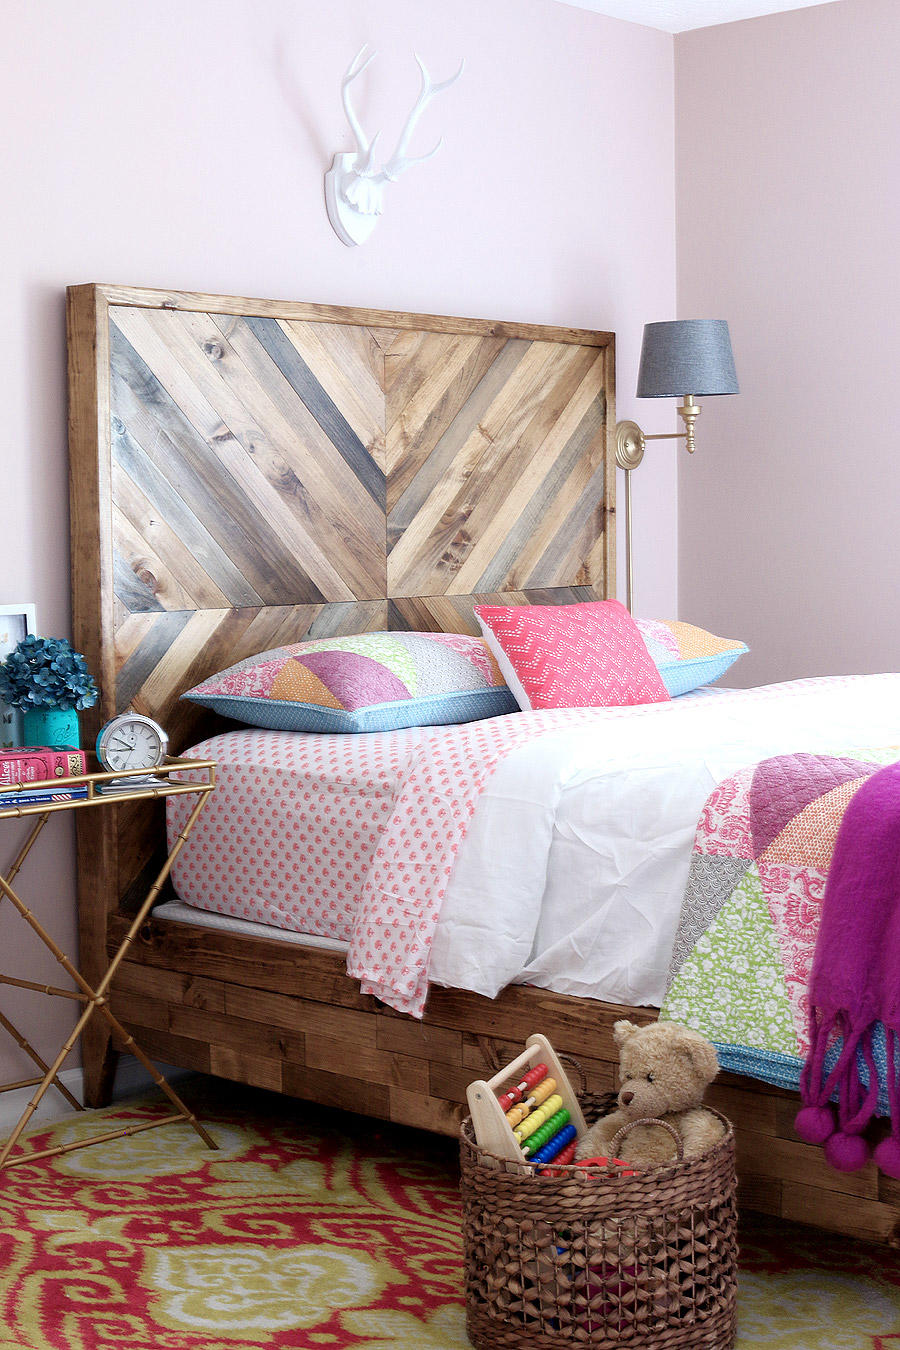 This tutorial covers both the Headboard and the Bed